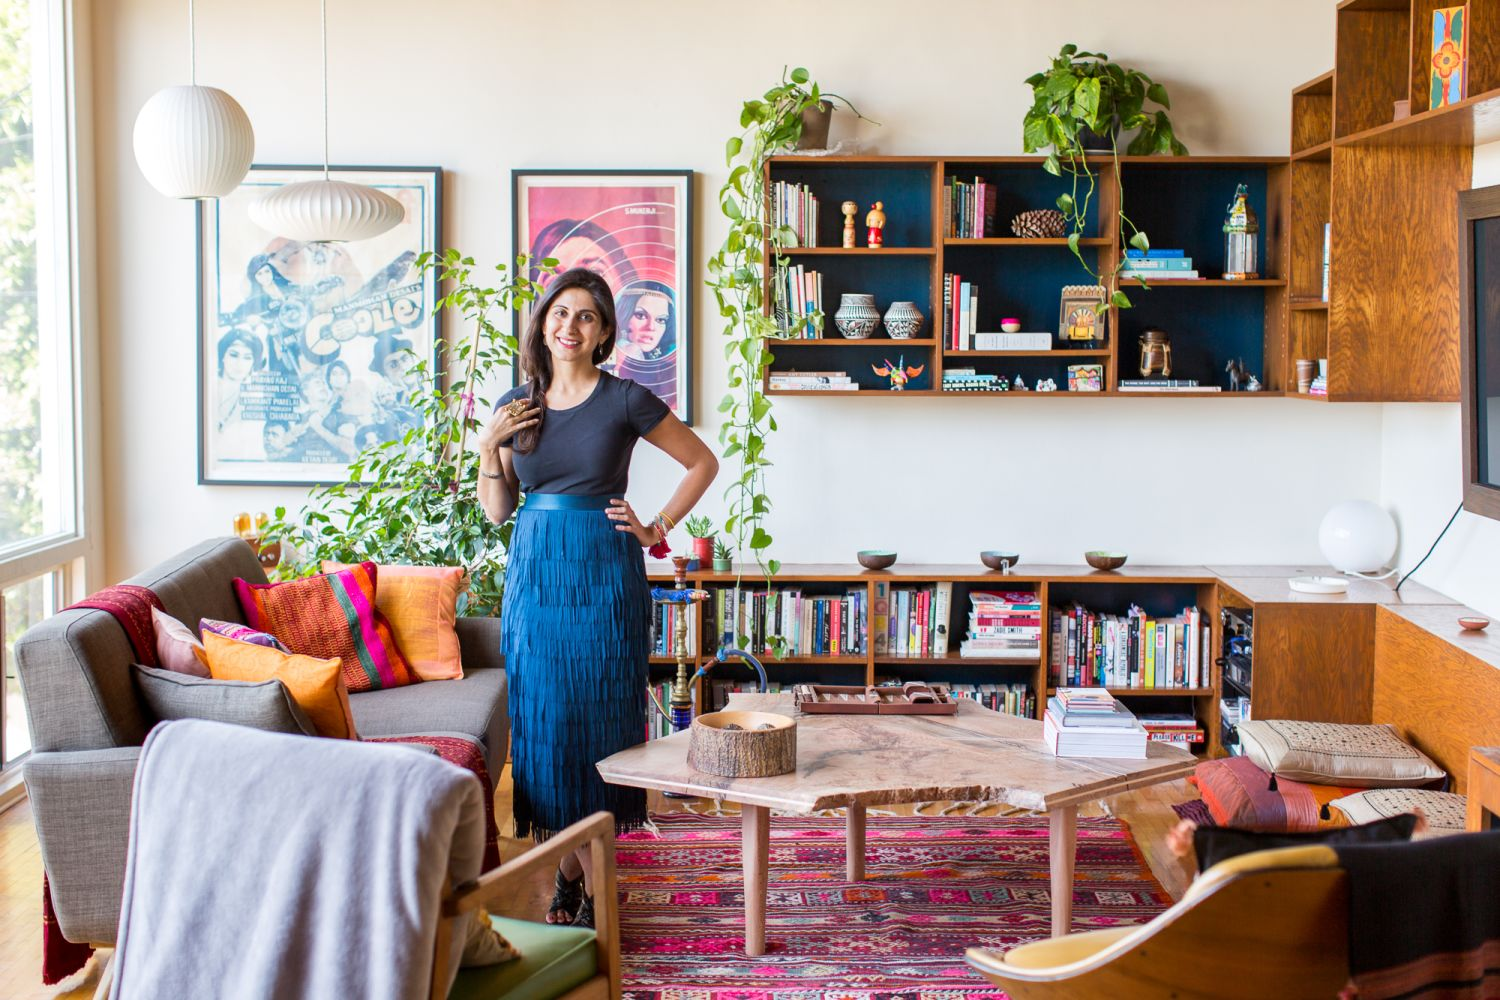 This LA Home Is So Stunning It Inspired Bestselling Novels